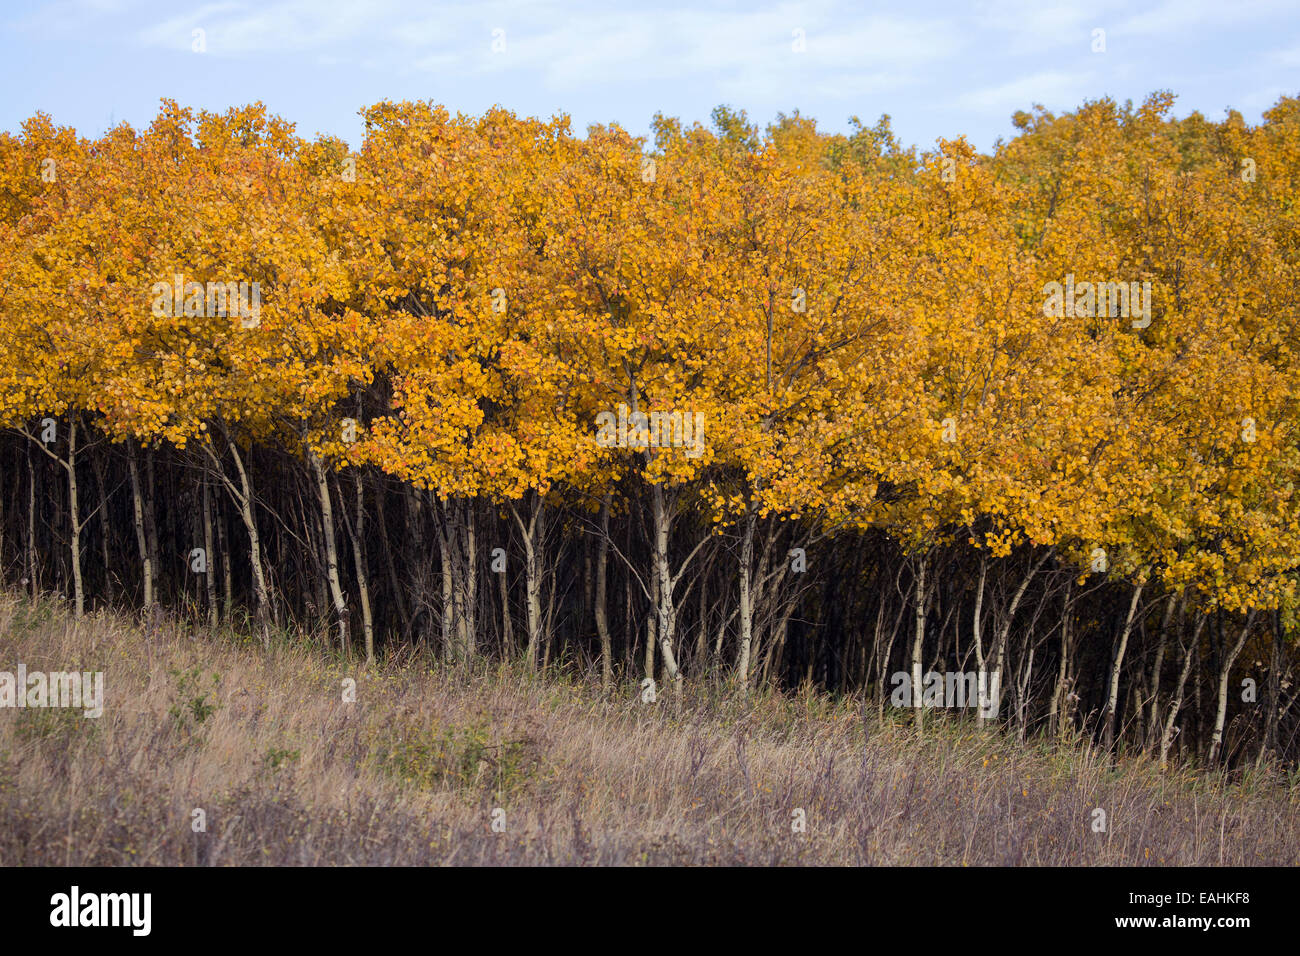 Dense stand of Aspen (Populus tremuloides) saplings in autumn foliage - Stock Image